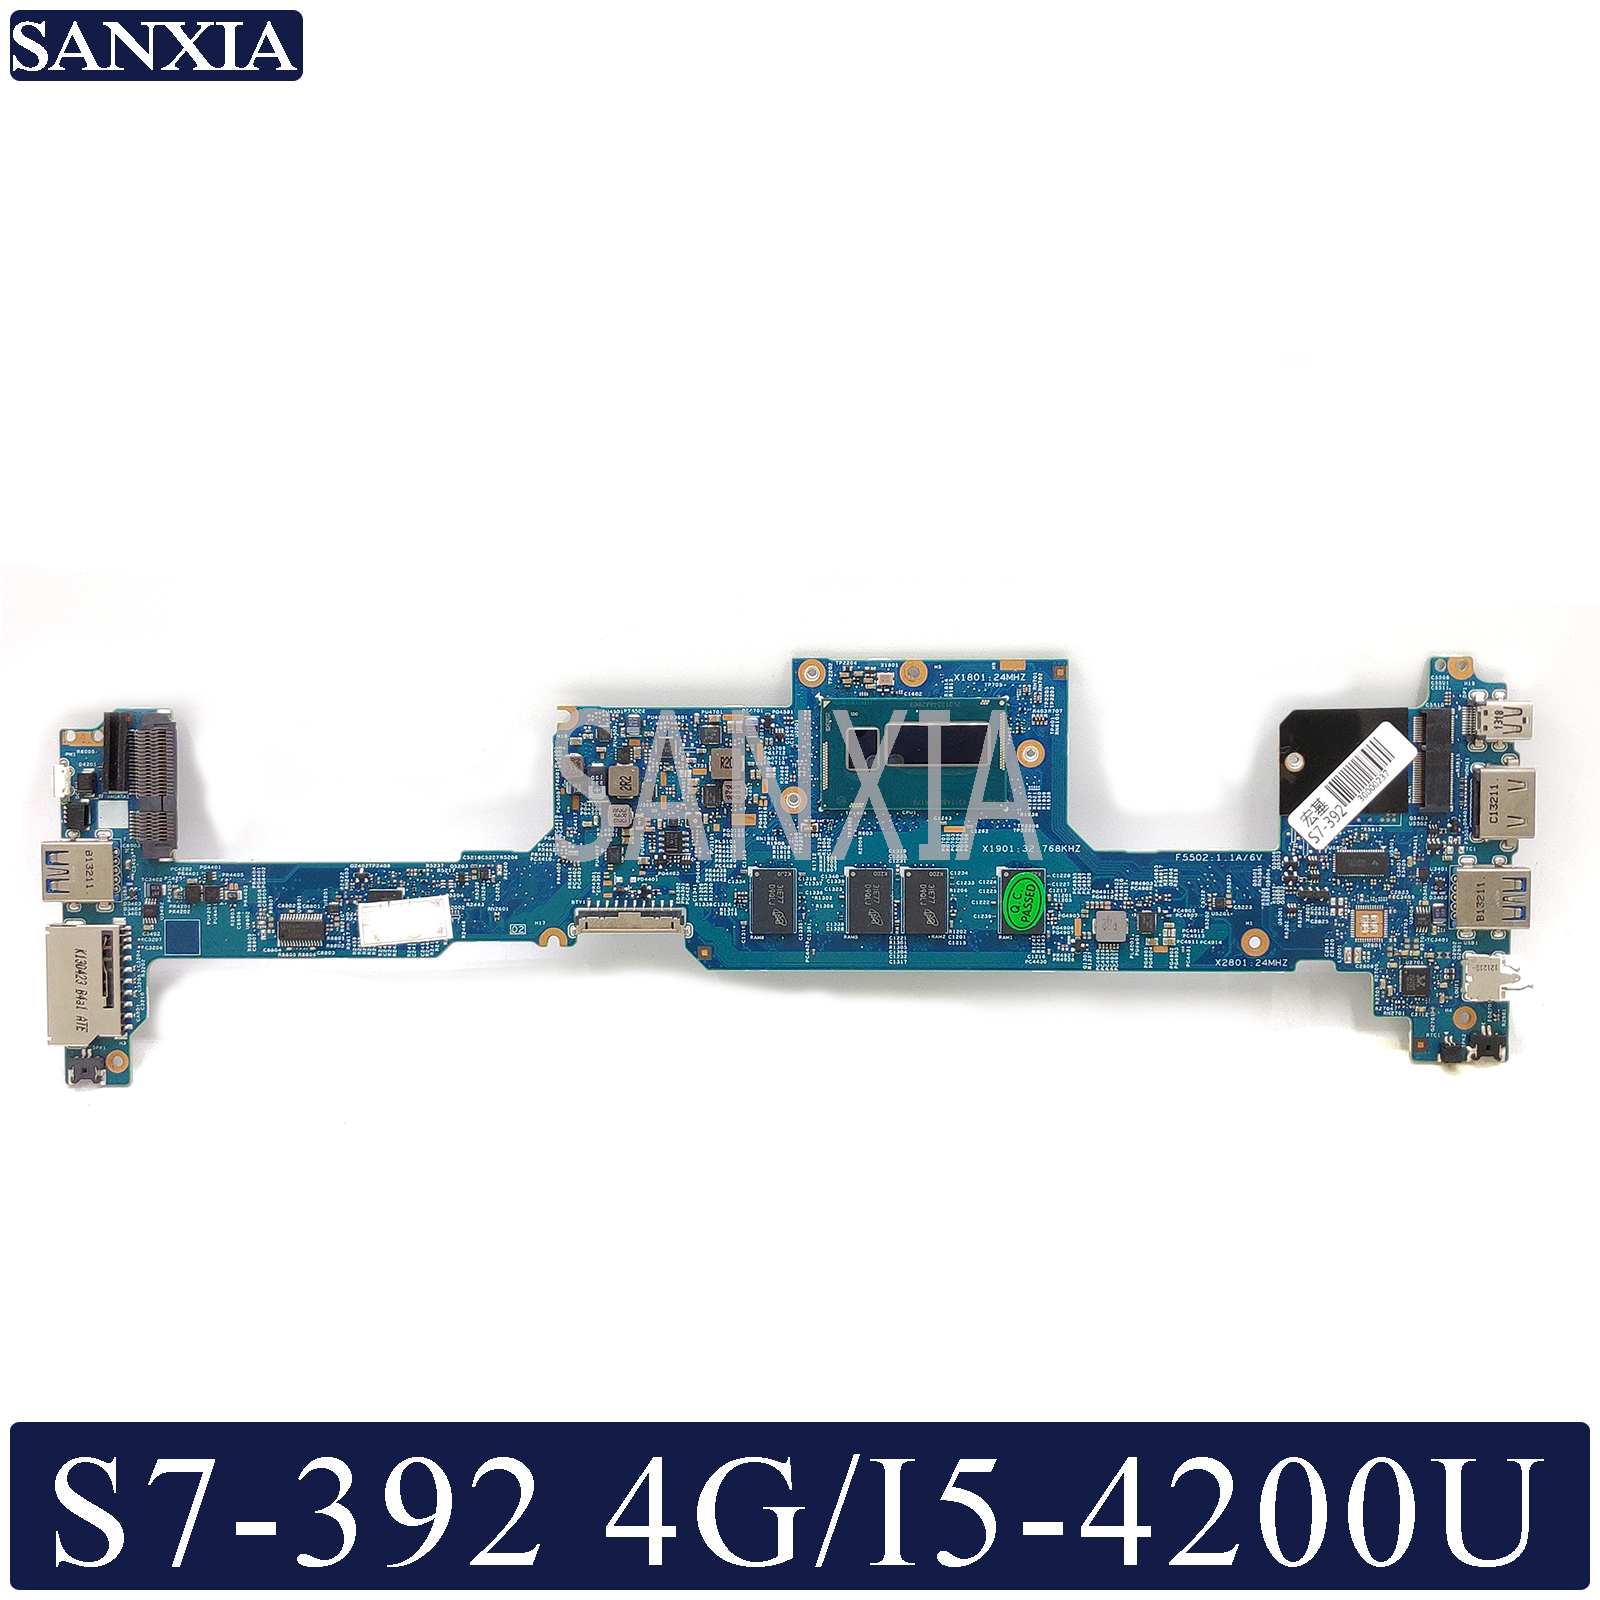 KEFU 12302 1 Laptop motherboard for font b Acer b font S7 392 original mainboard 4G